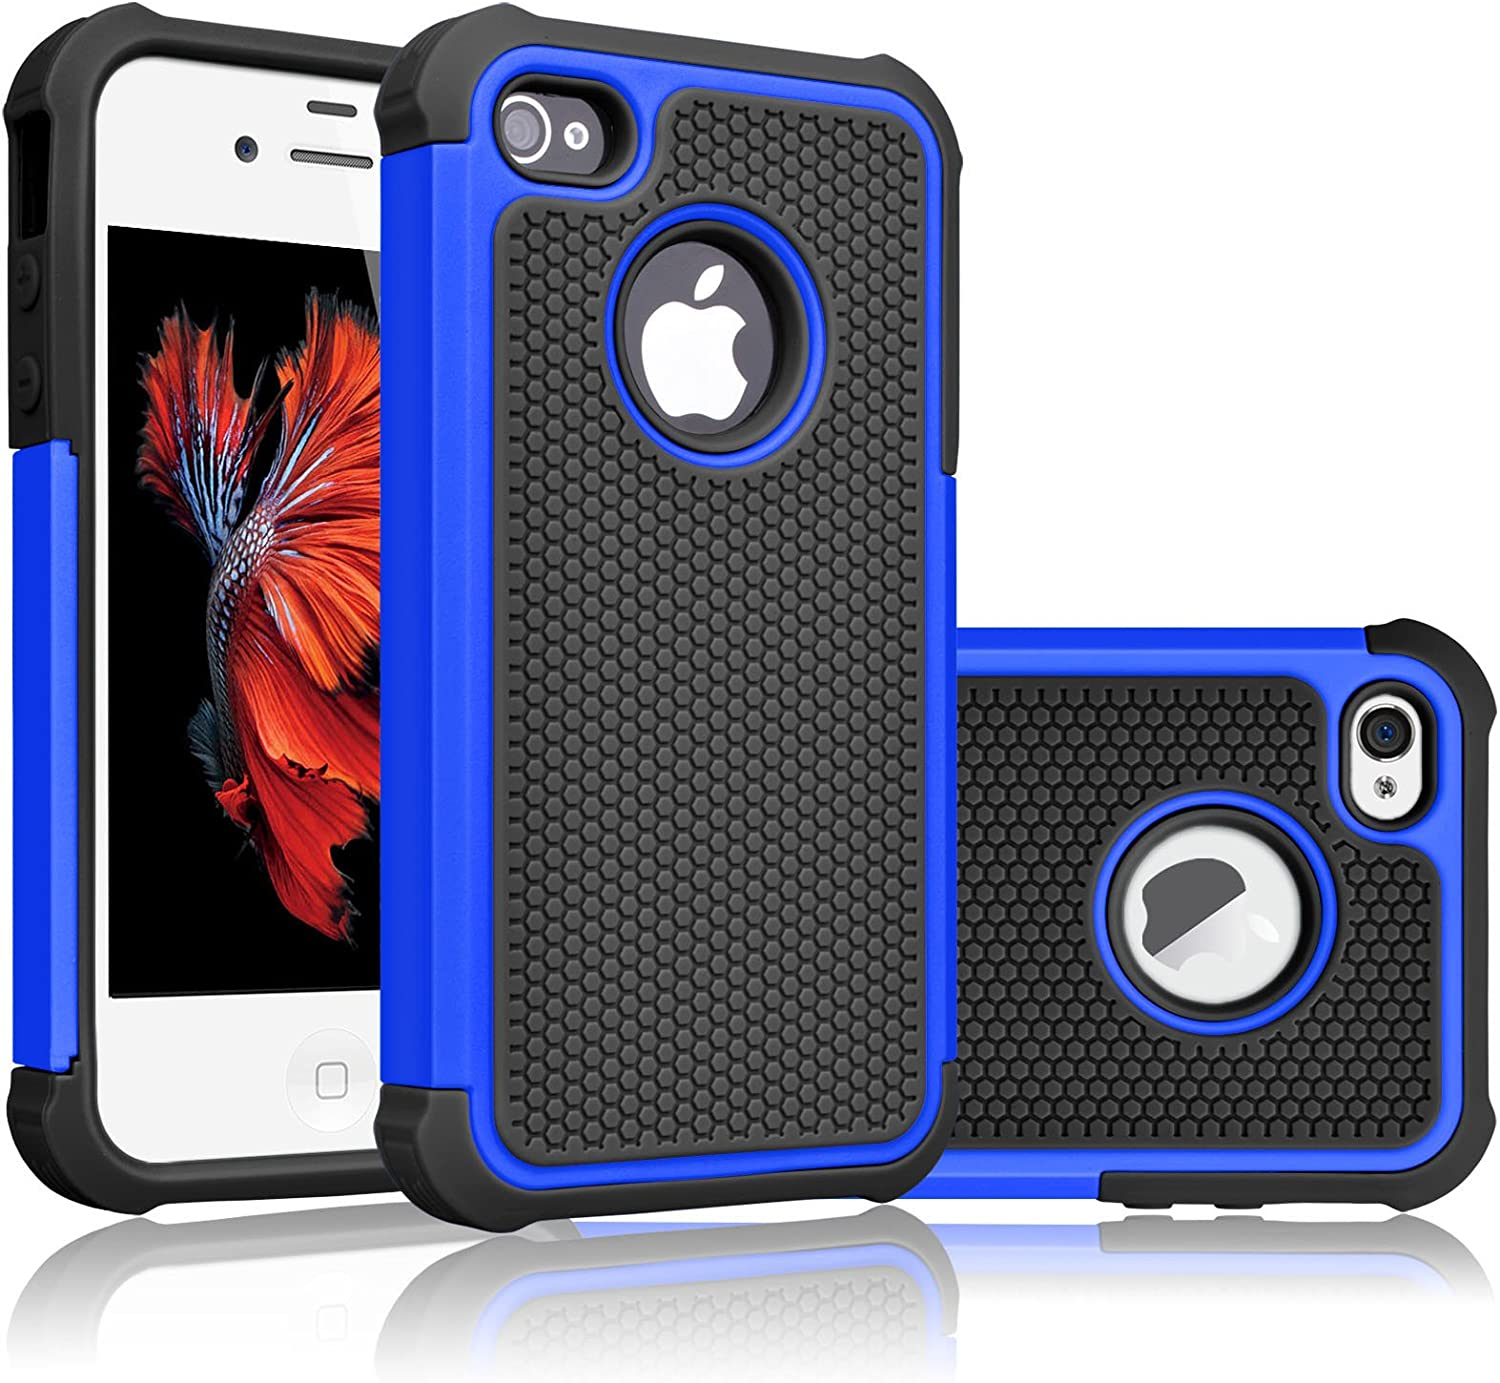 Tekcoo Compatible for iPhone 5S Case/iPhone SE Case/iPhone 5 Case, [Tmajor Series] [Blue/Black] Shock Absorbing Hybrid Defender Rugged Cover Skin Shell Hard Plastic Outer & Rubber Silicone Inner